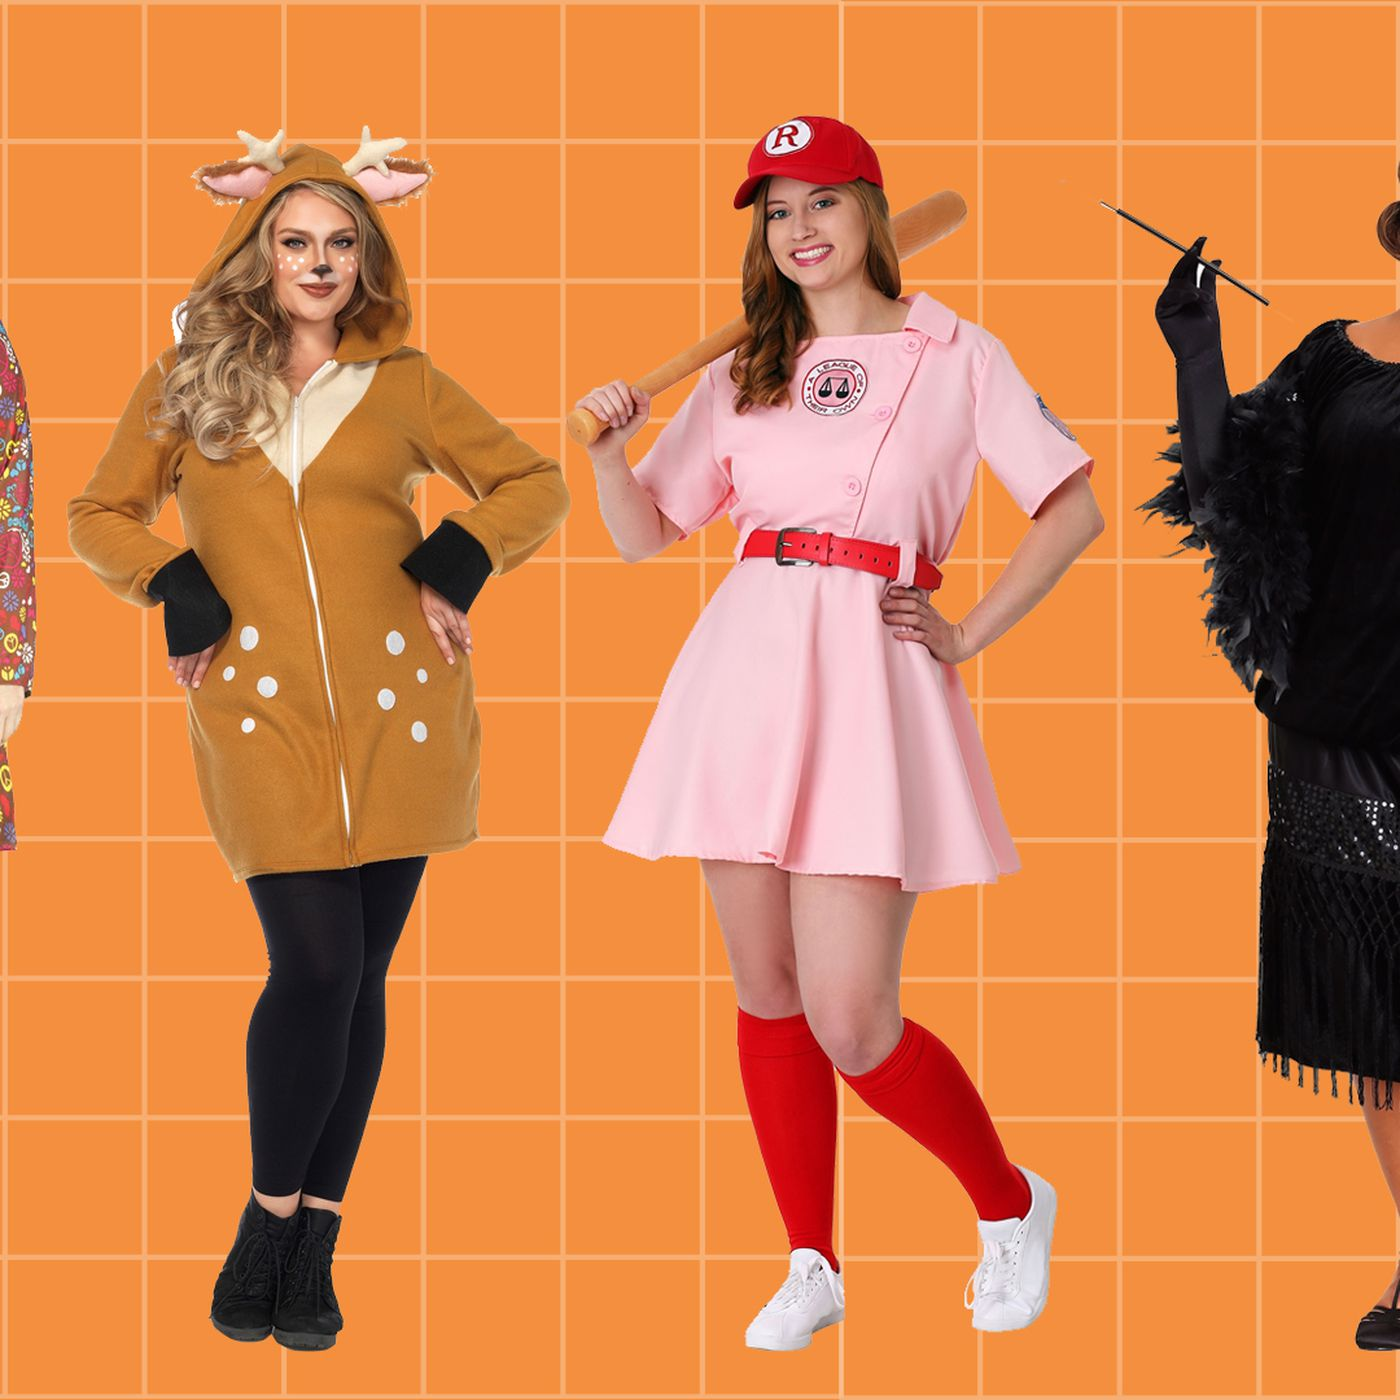 Costumes For Fat Girls Pic